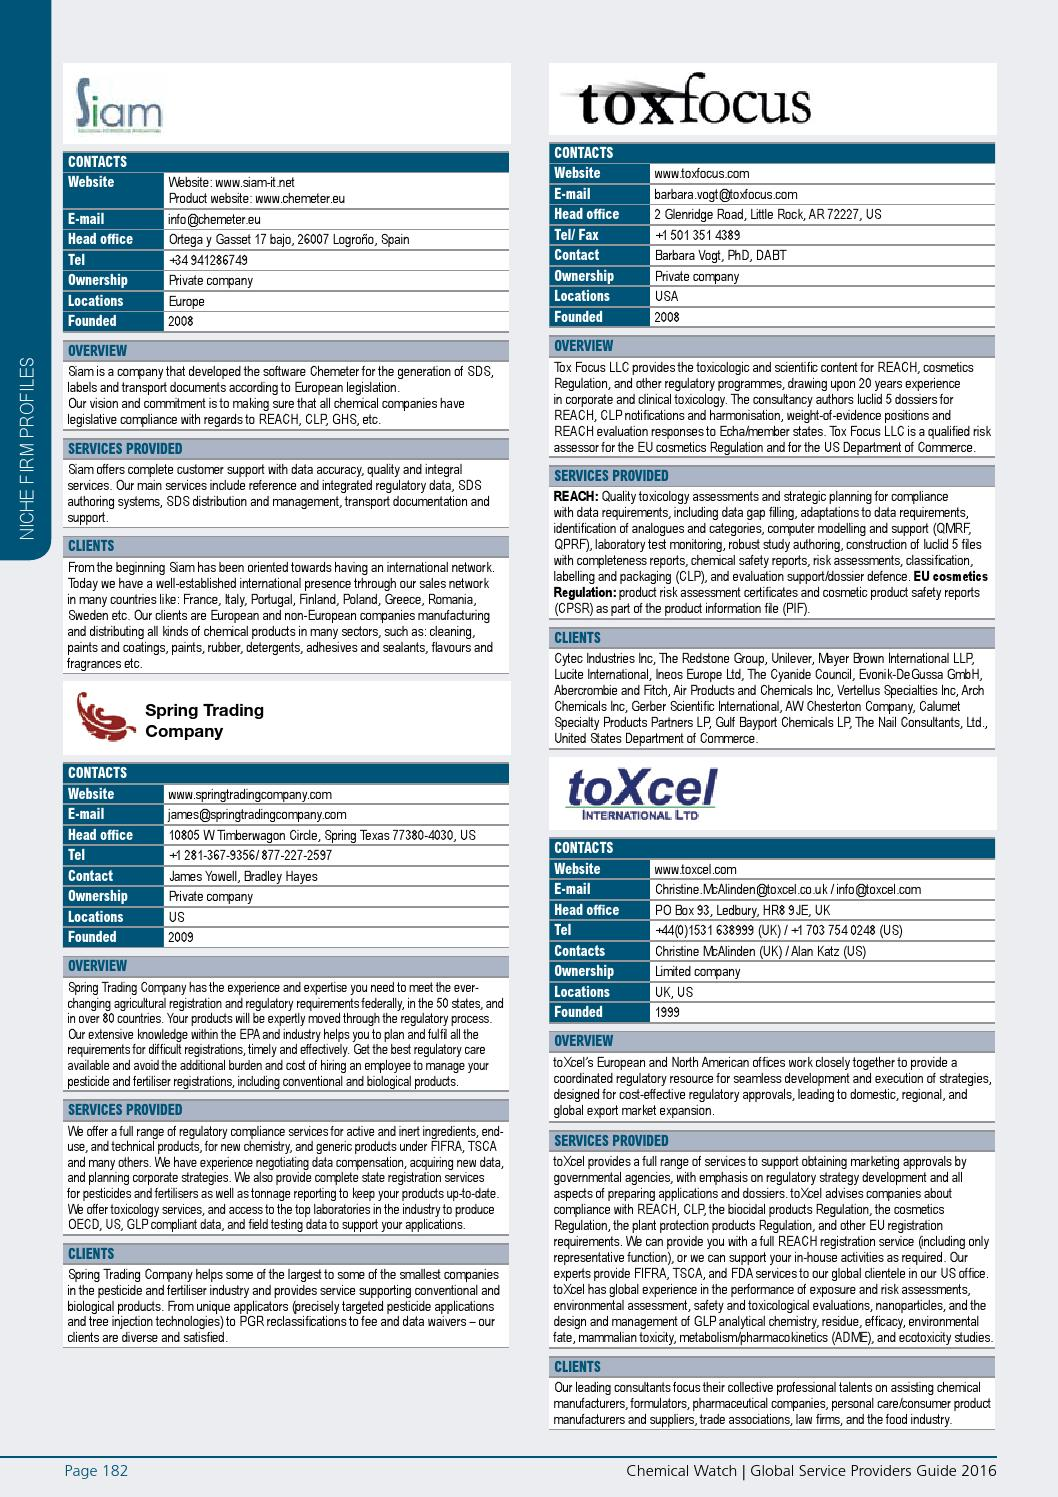 Chemical Watch Service Providers Guide 2016 by Chemical Watch - issuu